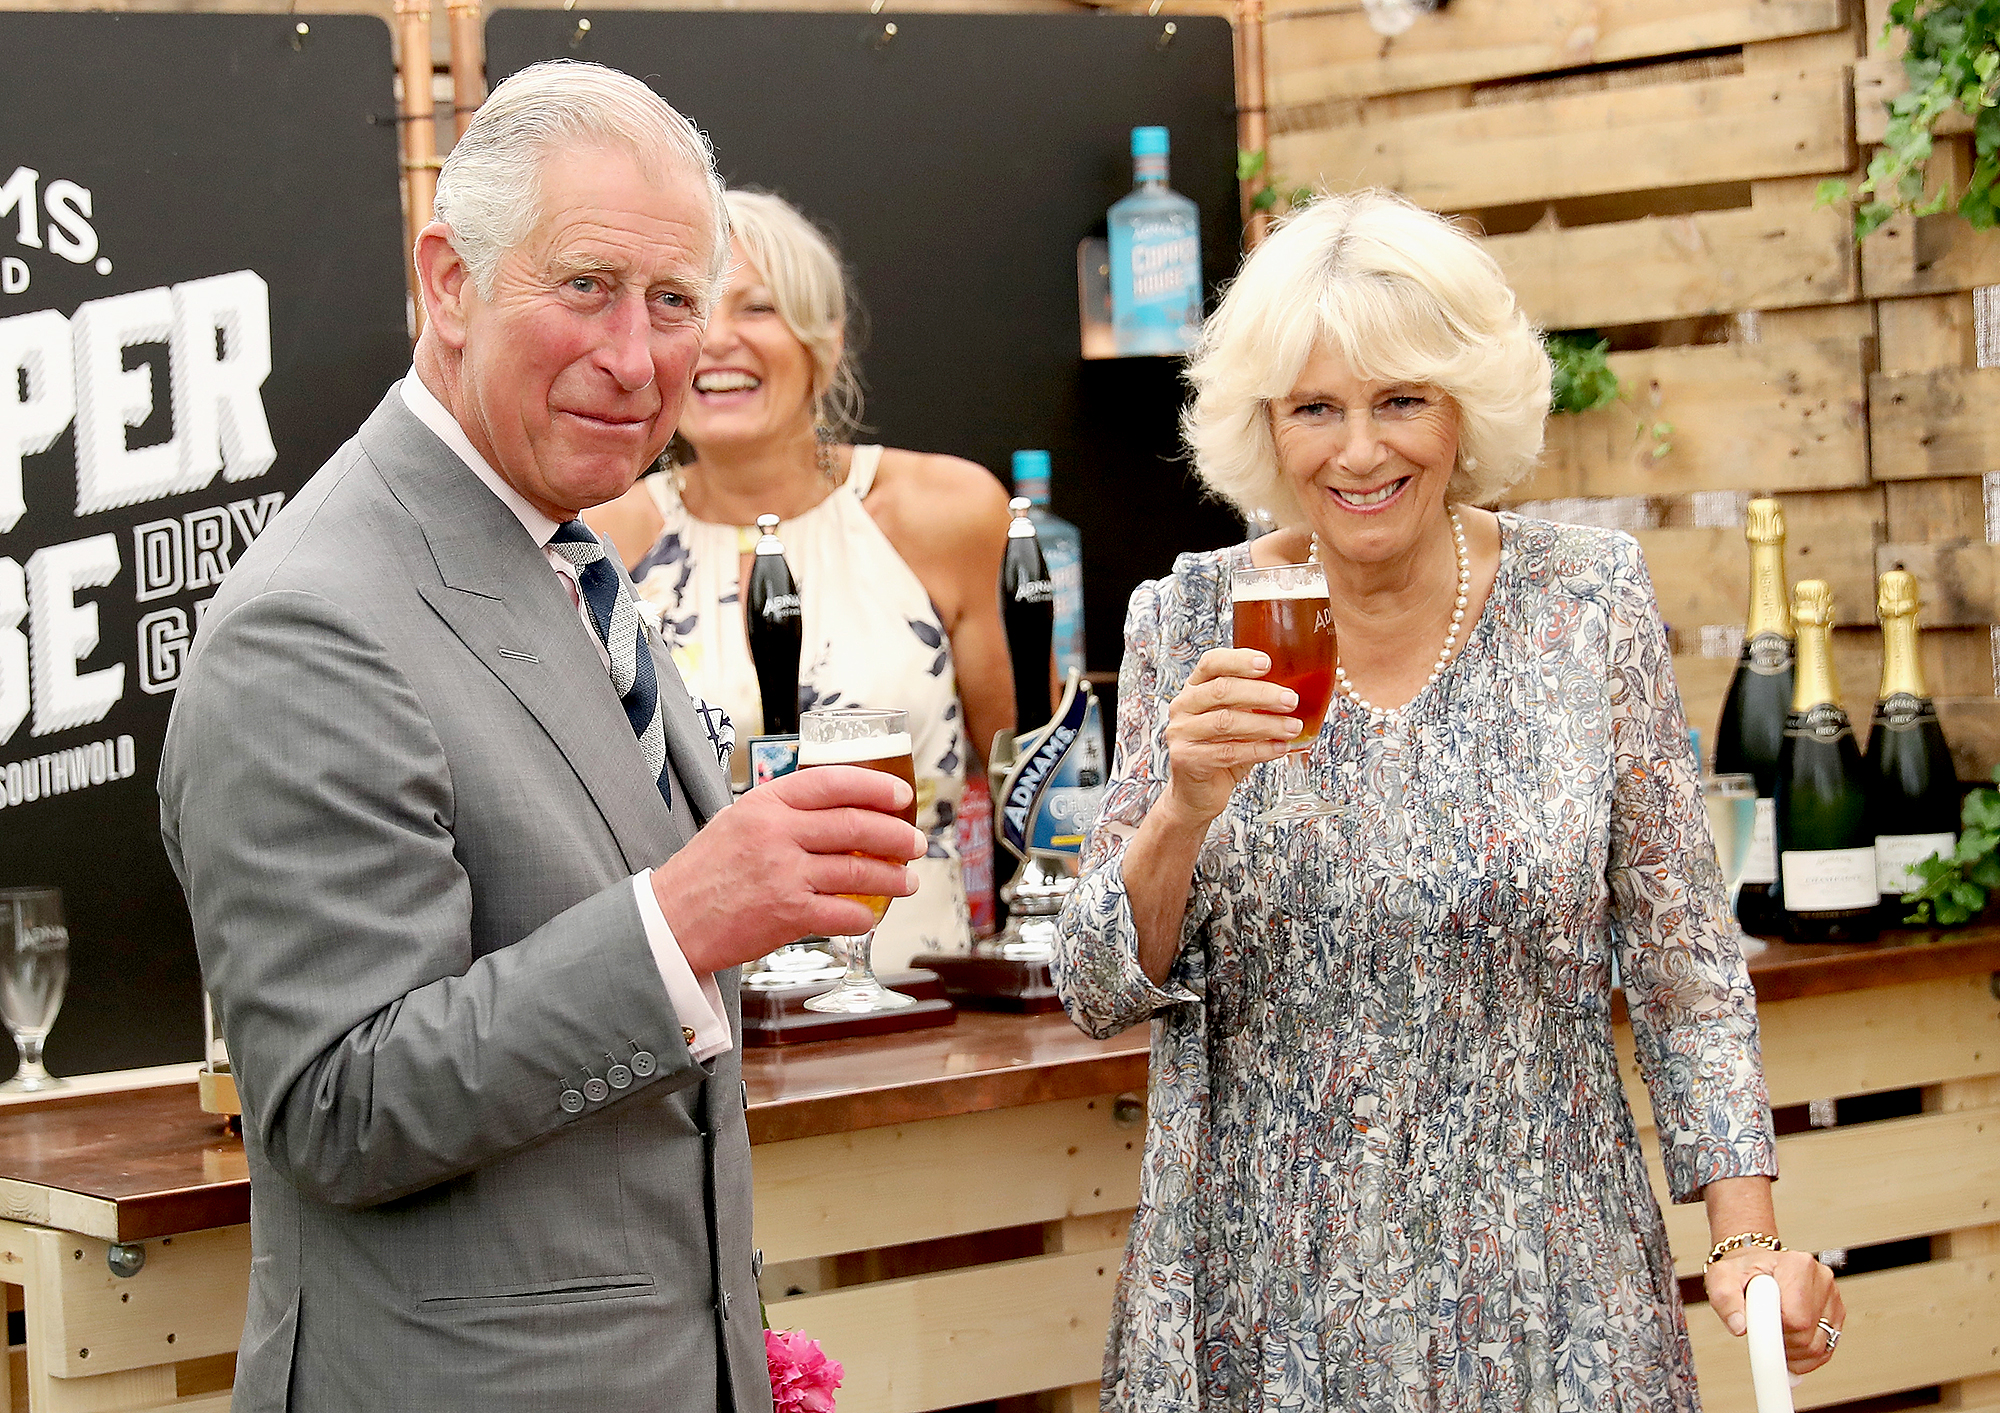 Drinking-Duo-prince-charles-camila-beer - Camilla , Duchess of Cornwall and Prince Charles drank beers side-by-side as they visited the Sandringham Flower Show in Sandringham, England, on July 27, 2016. Cheers, you two!